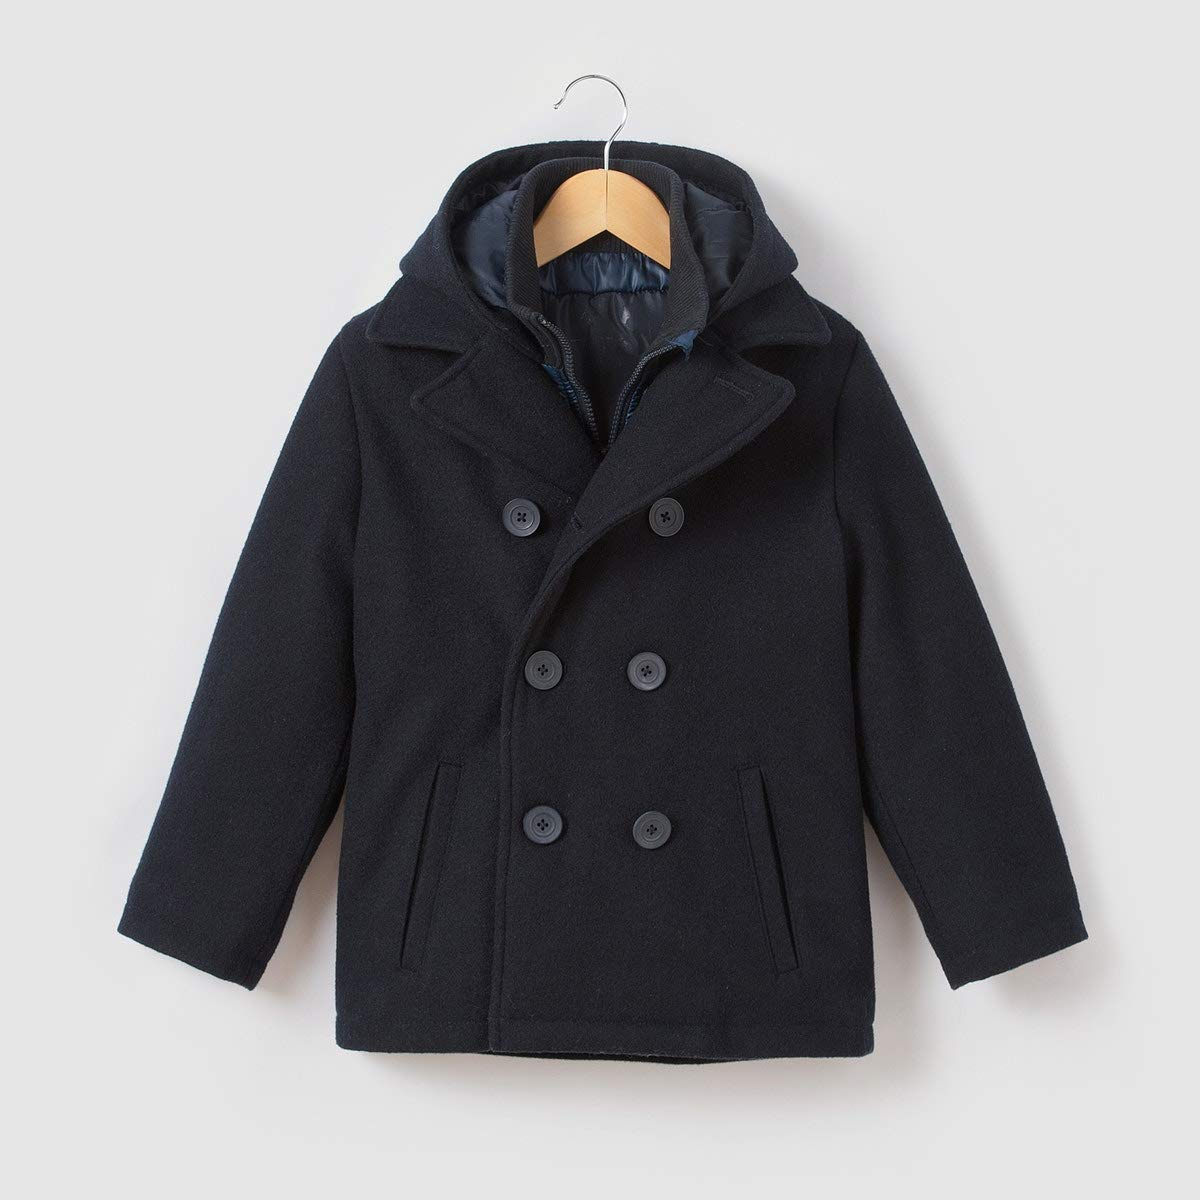 La Redoute Collections Wool Mix Pea Coat, 3-12 Years Blue Size 4 Years (102 cm)